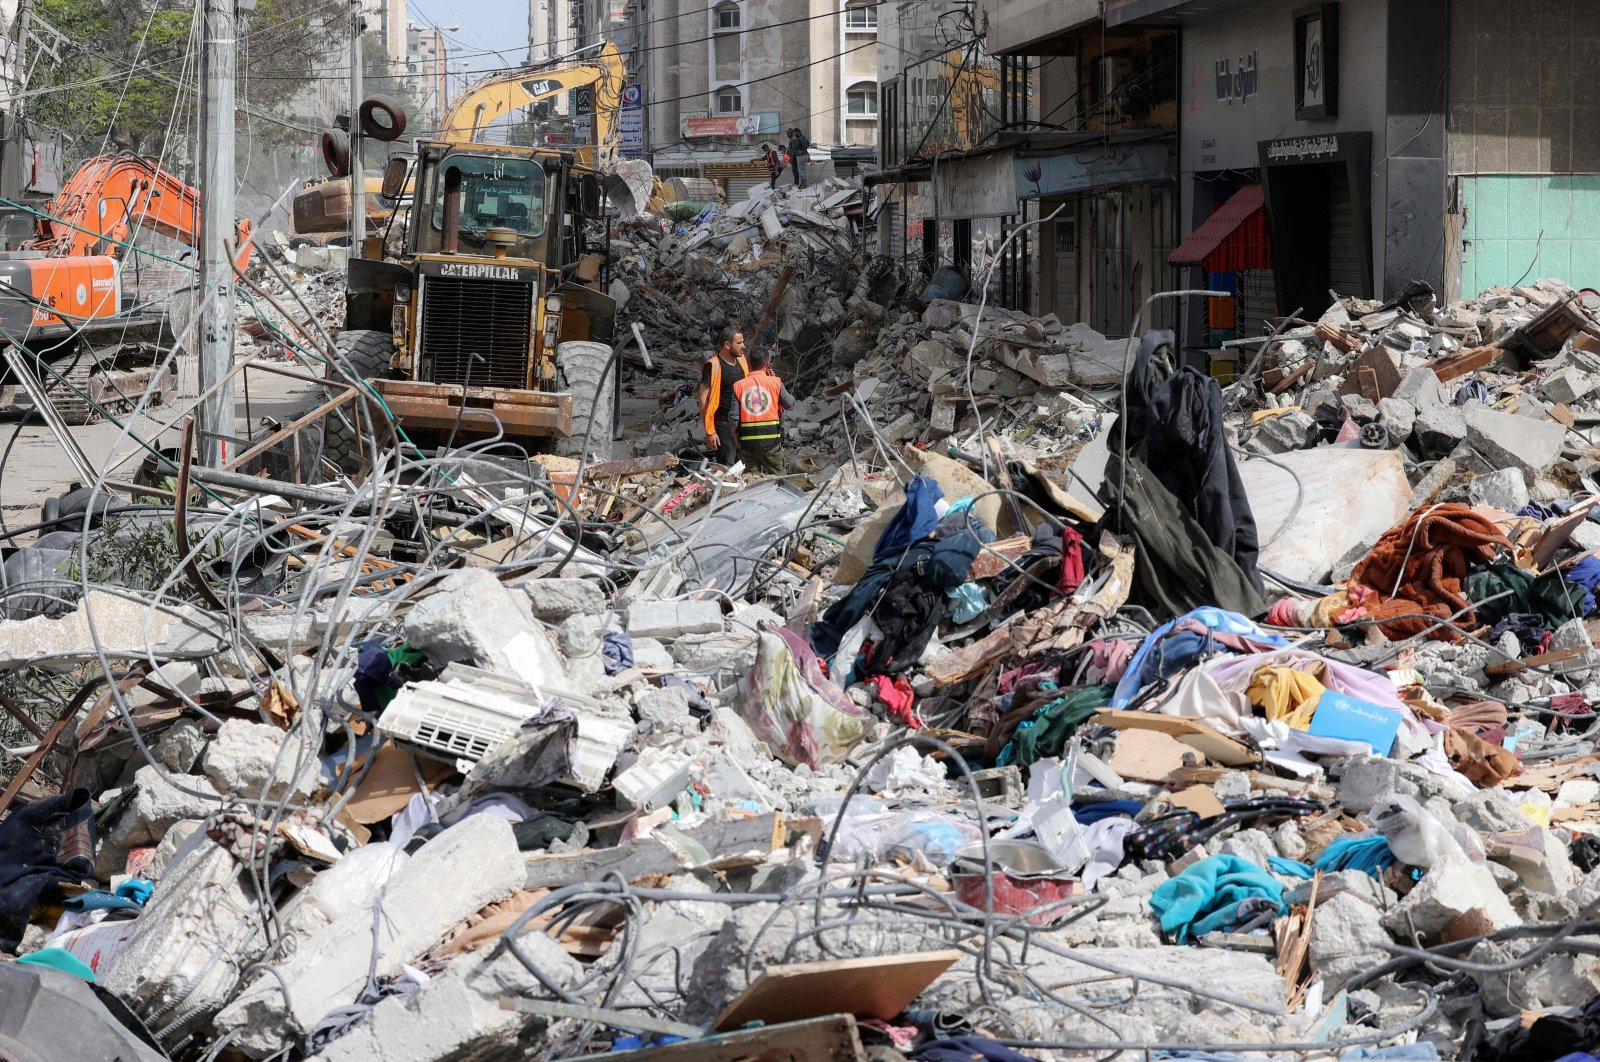 An excavator clears the rubble of a destroyed building in Gaza City's Rimal residential district following massive Israeli bombardment on the Hamas-controlled enclave, Gaza, May 16, 2021. (AFP Photo)